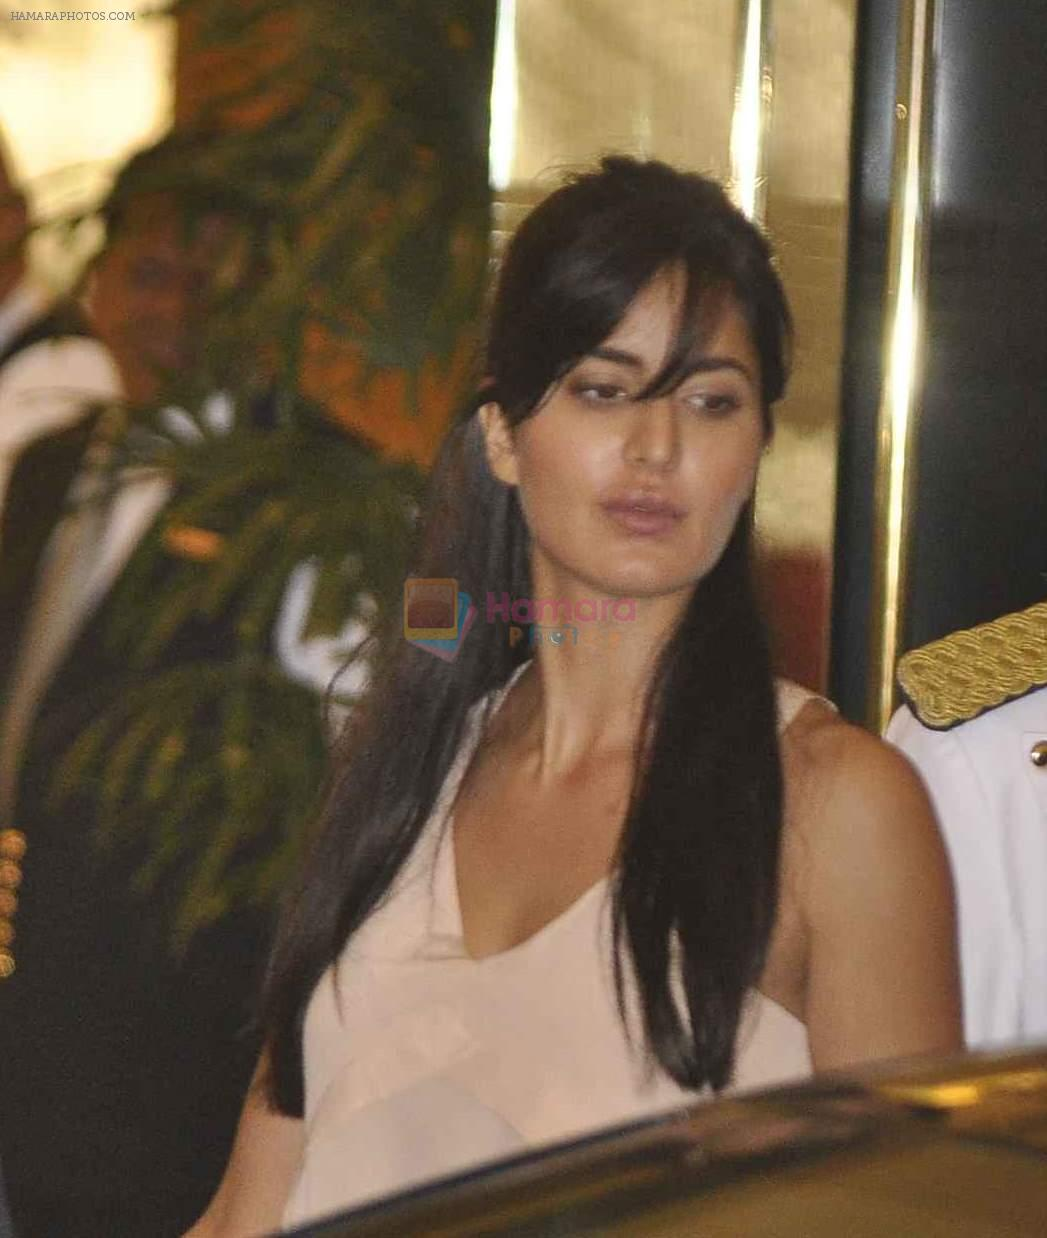 Katrina Kaif at arjun kapoor bday celebration on 27th June 2015